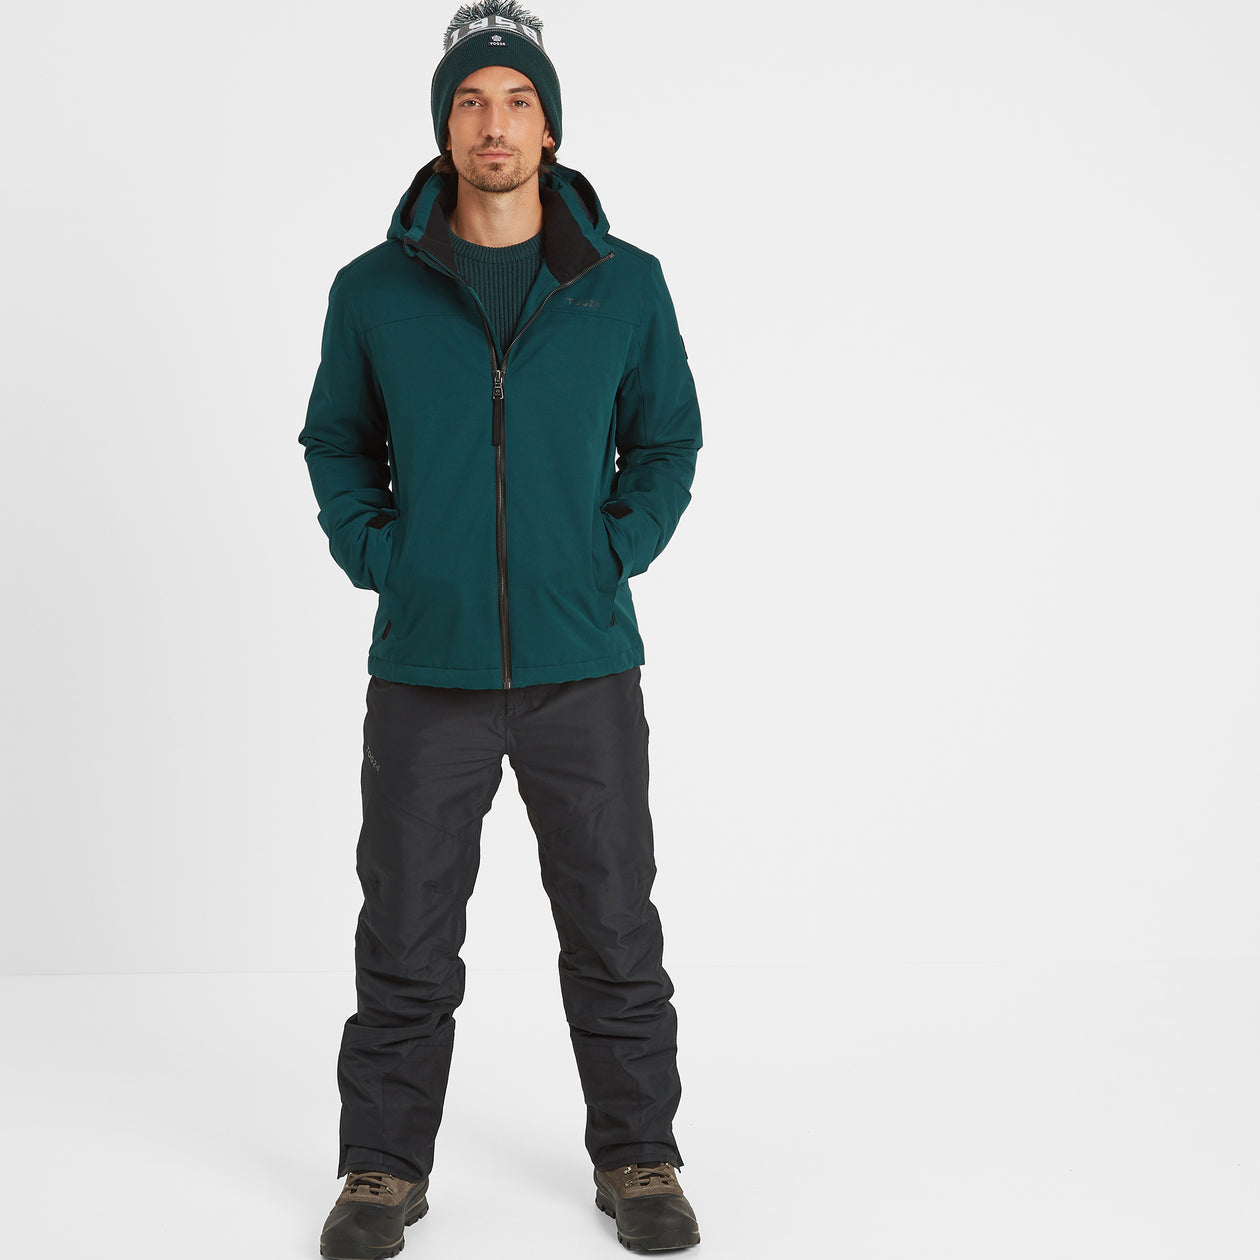 Cawood Mens Ski Jacket - Forest image 4